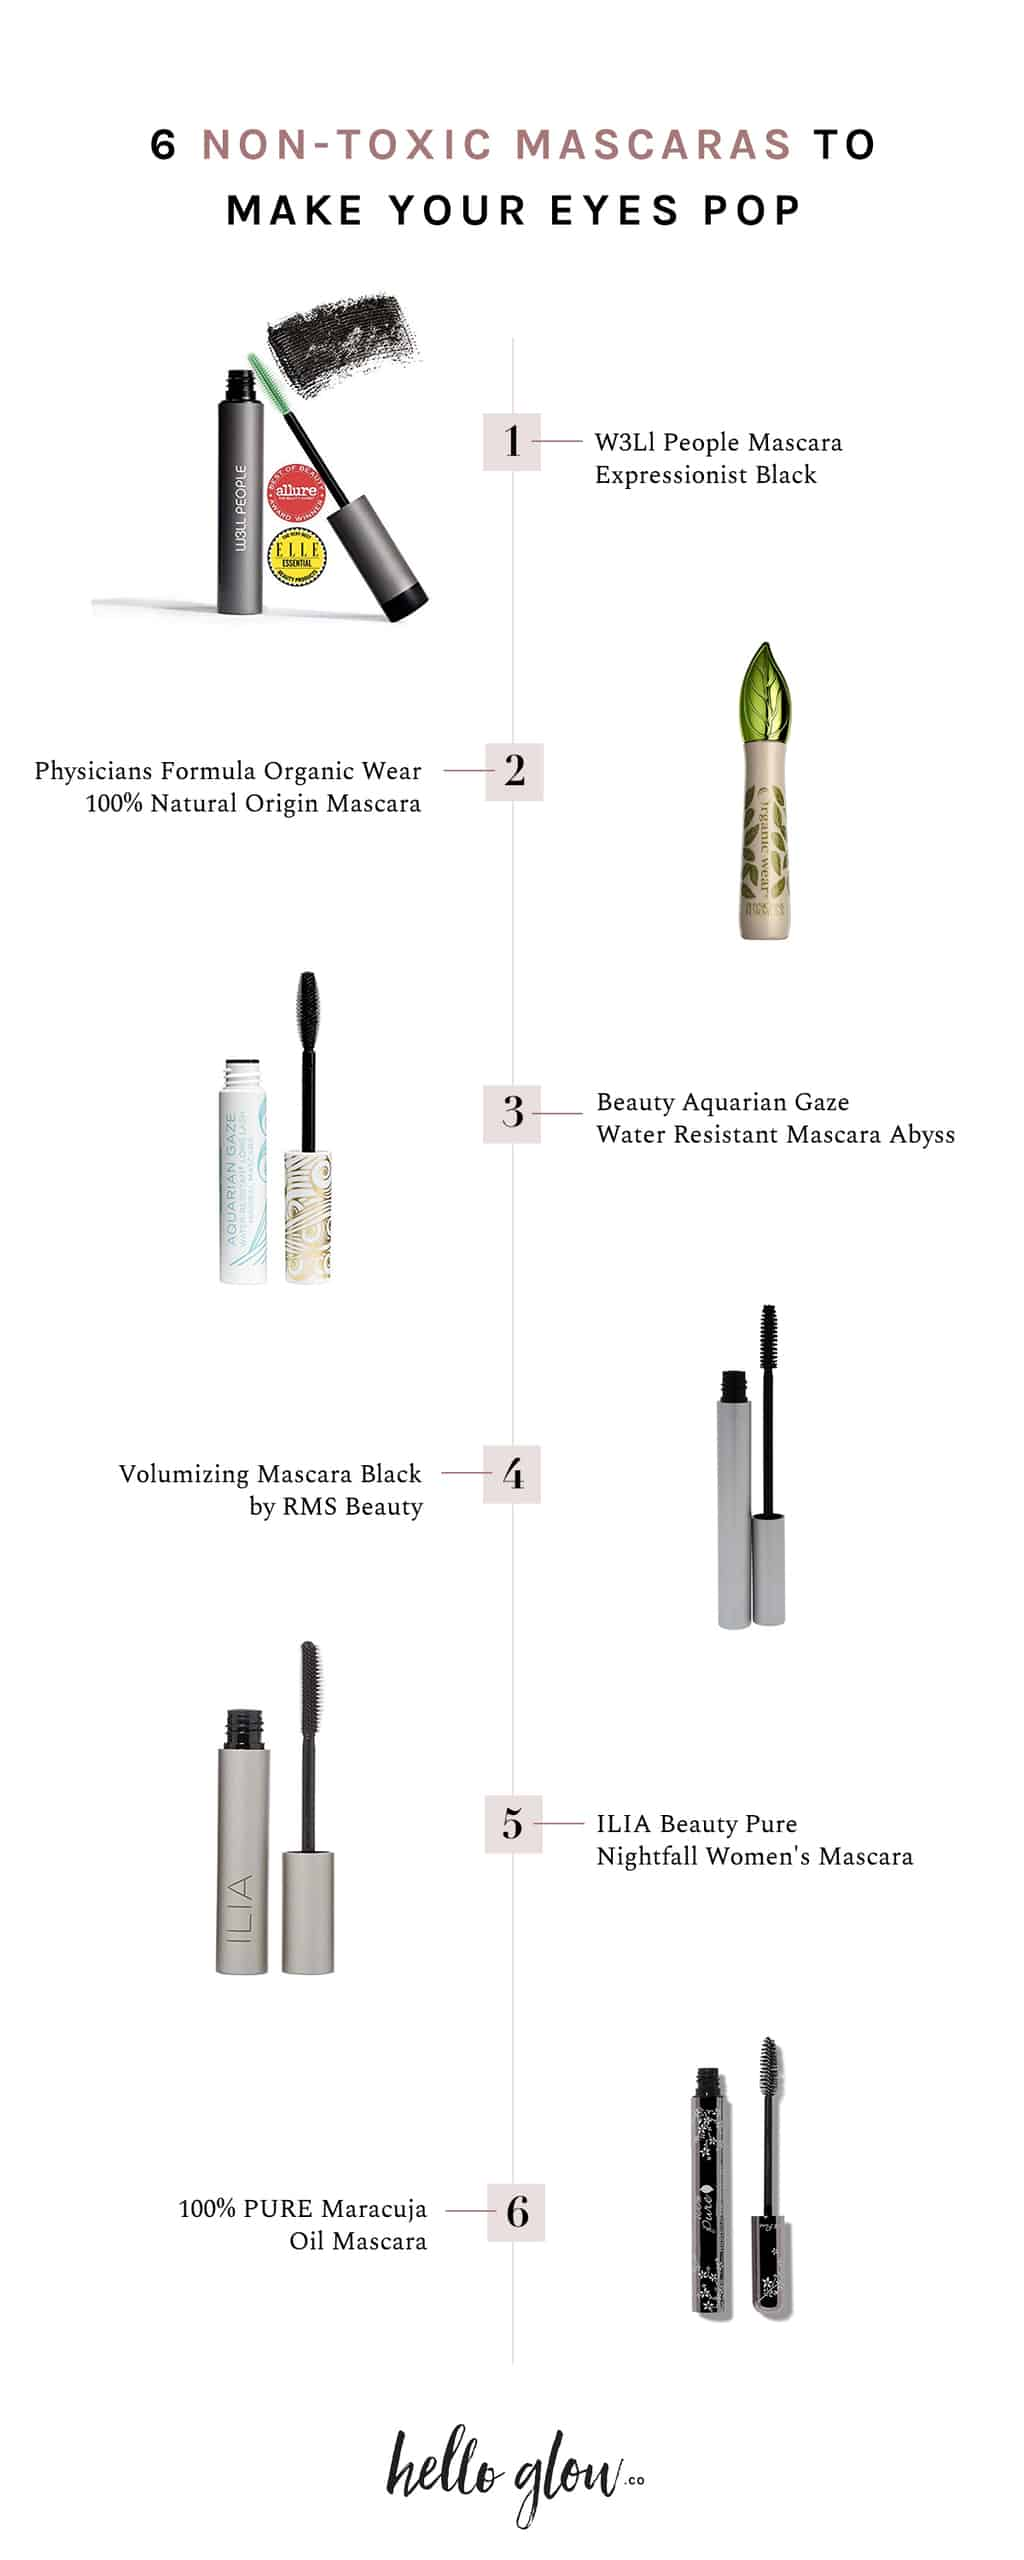 6 Natural Mascara Picks